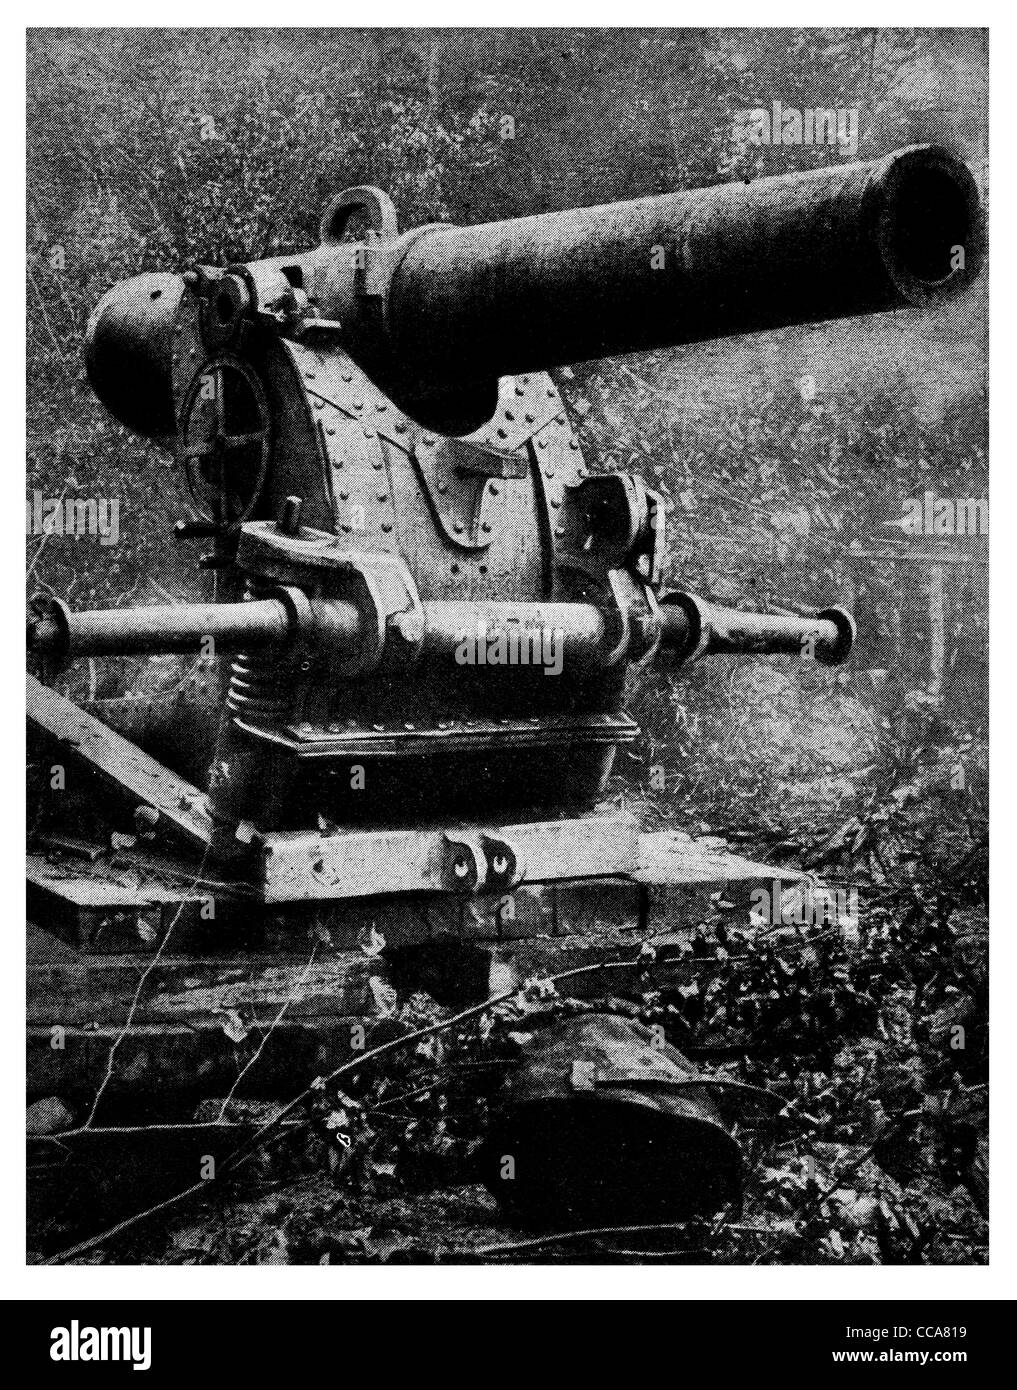 1916 155 mm 6 inch Heavy artillery French weapon 35 years old cannon siege gunner - Stock Image